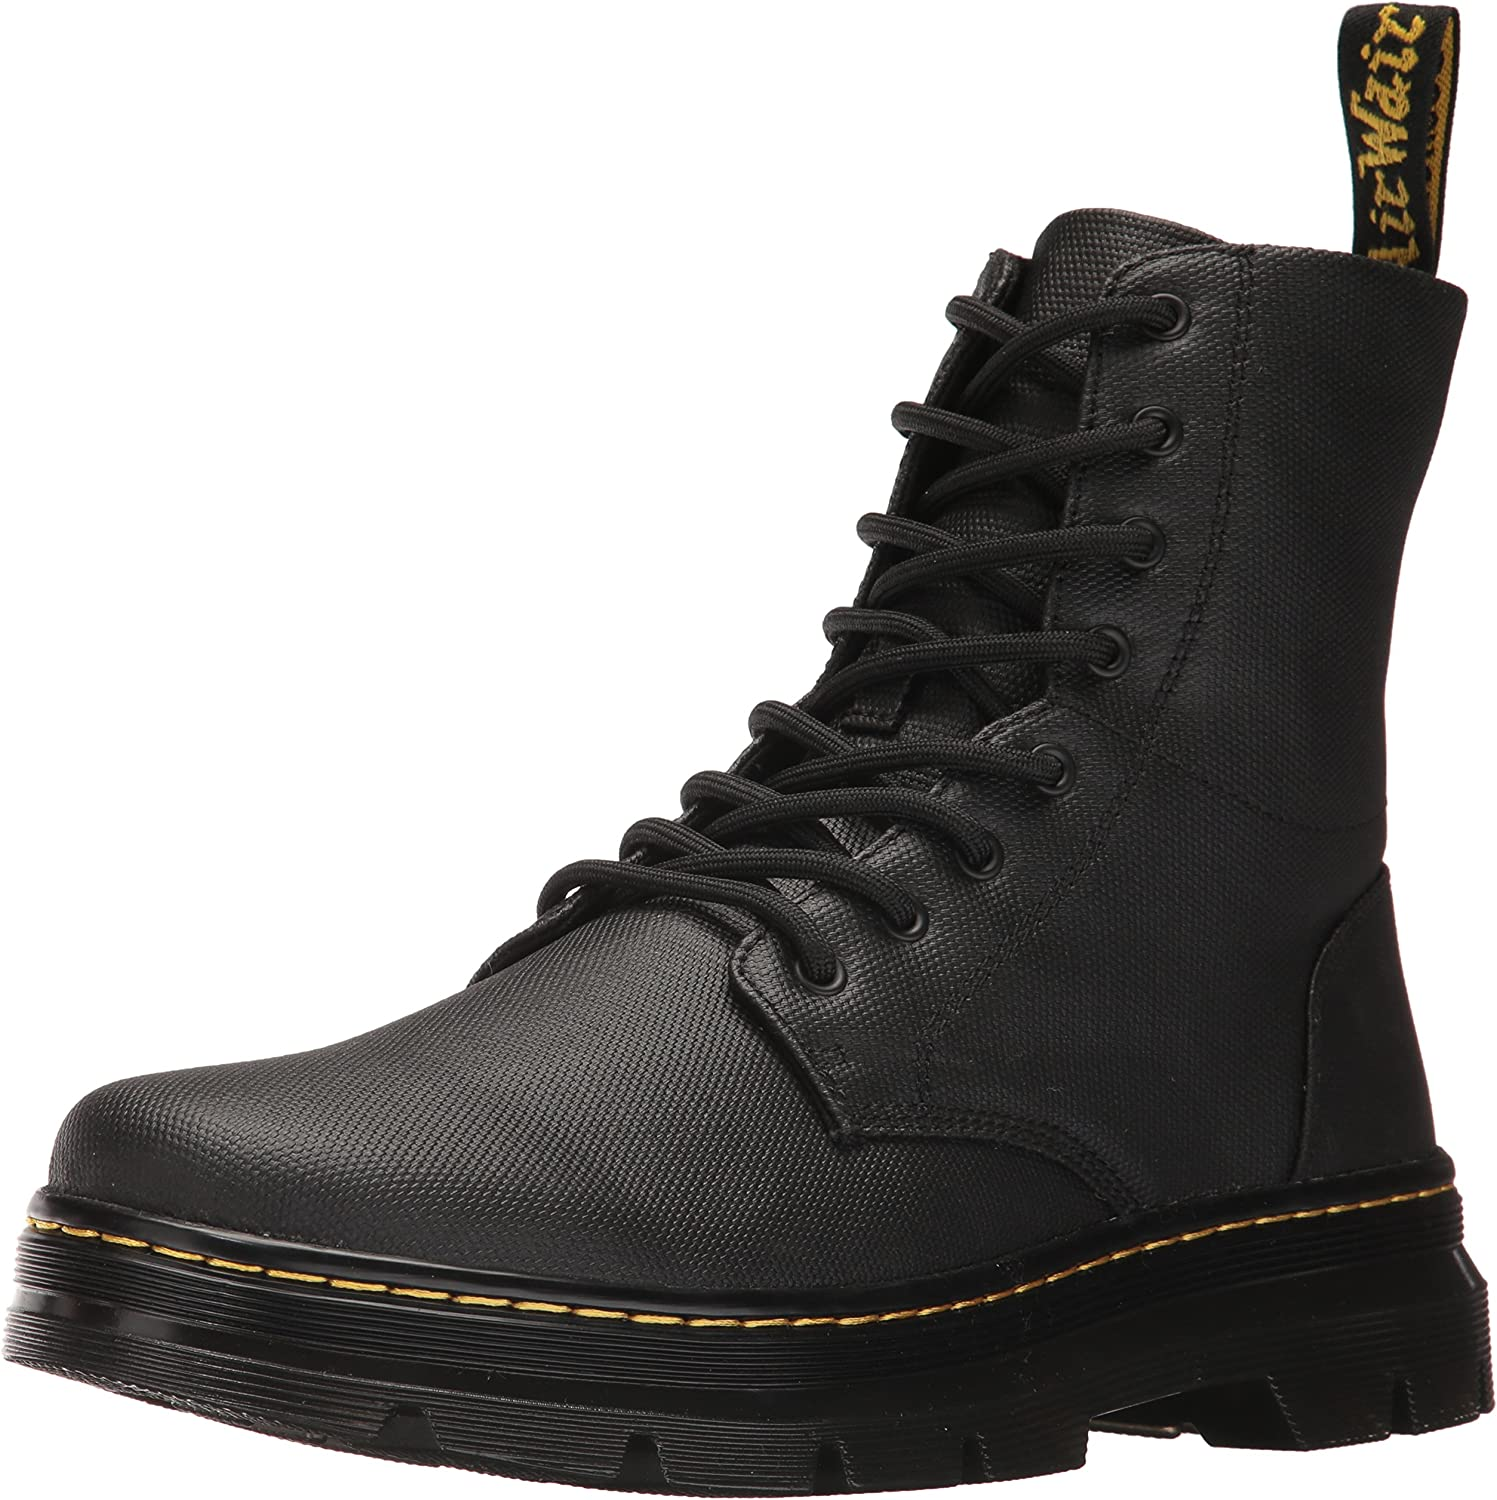 Dr. Martens Women's Combs Ankle Boot